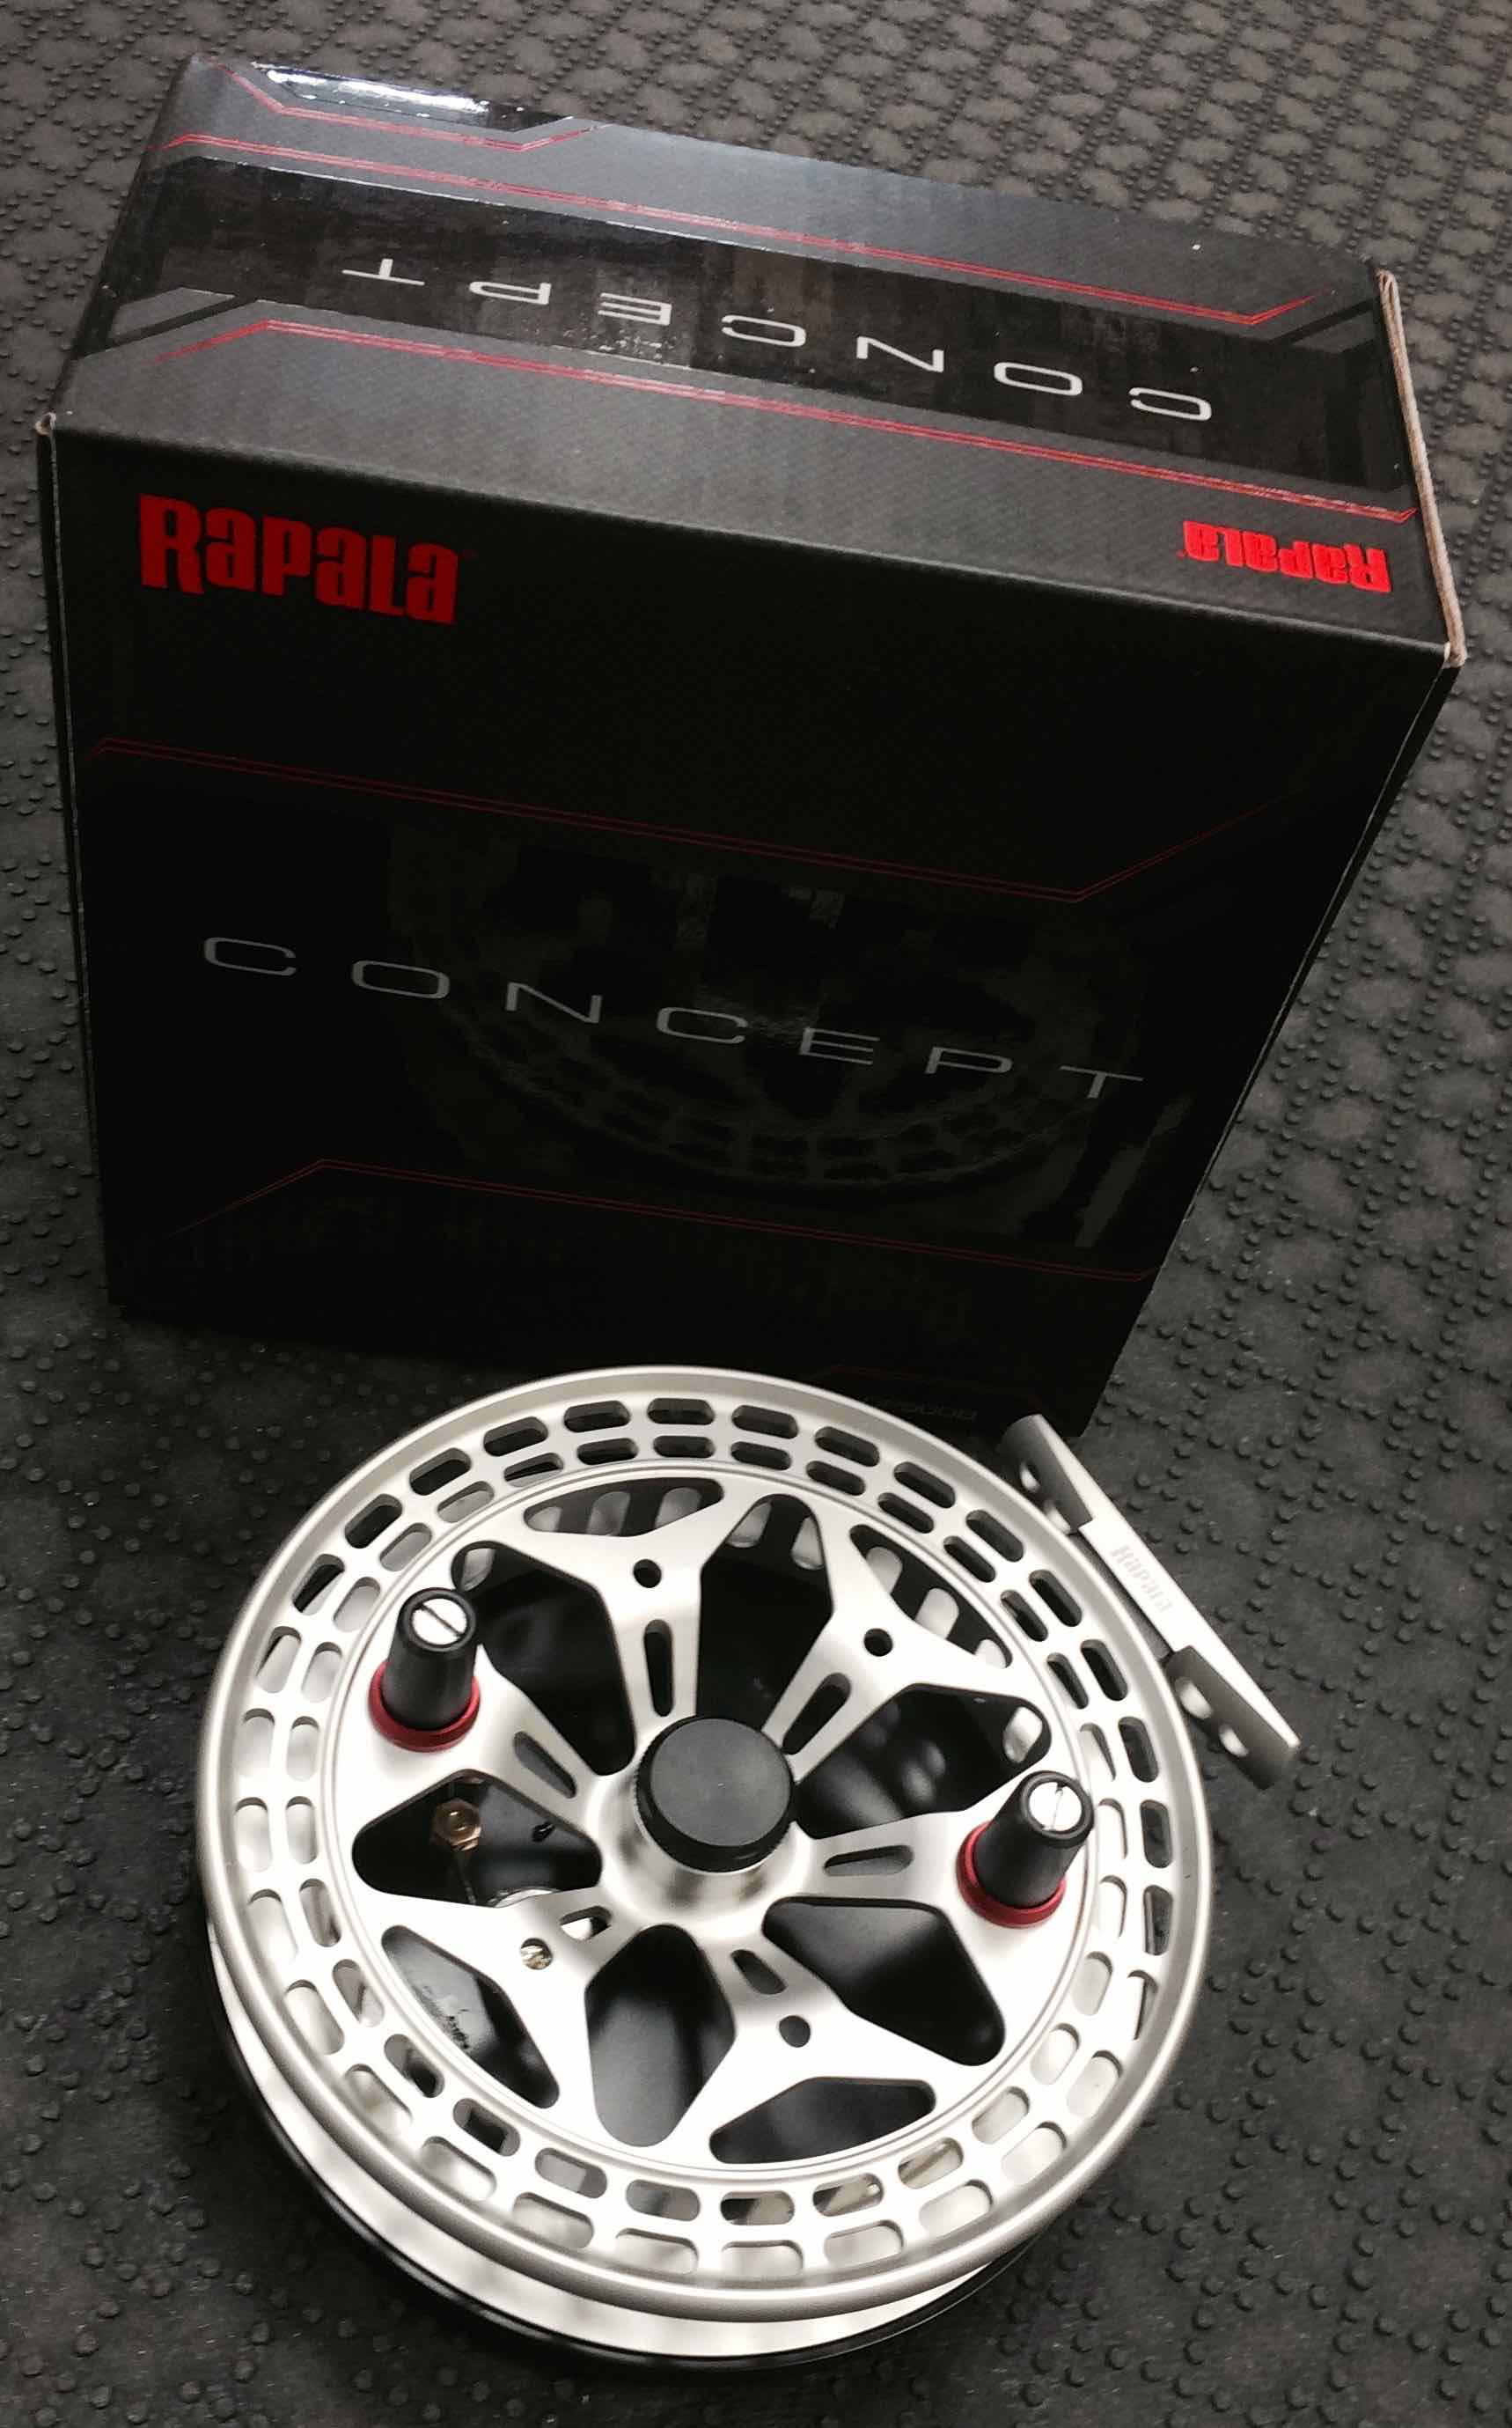 Rapala Concept 5 inch Centerpin Float Reel AA